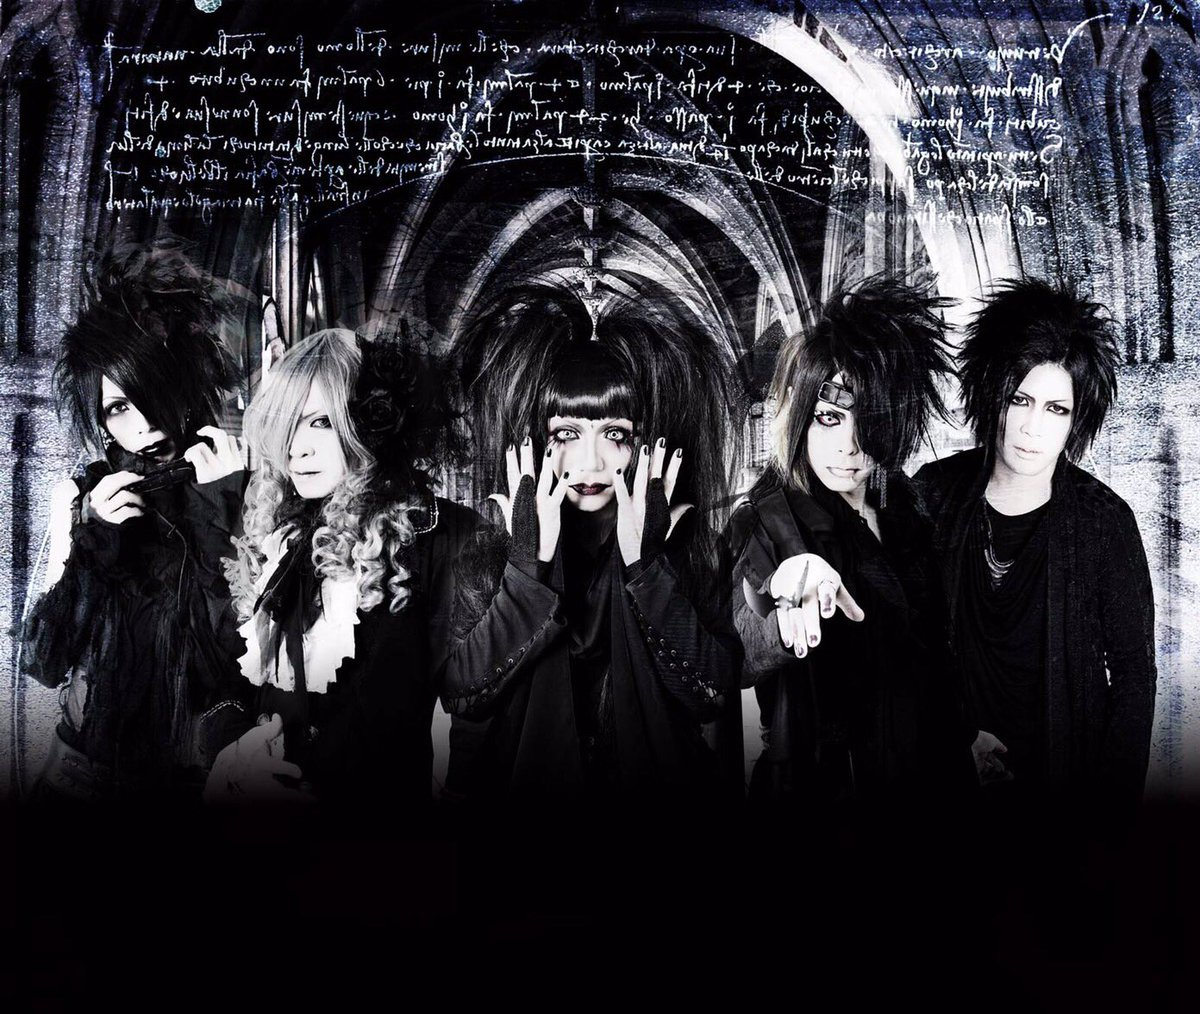 Support drummer Youichi will join Lucifer's underground